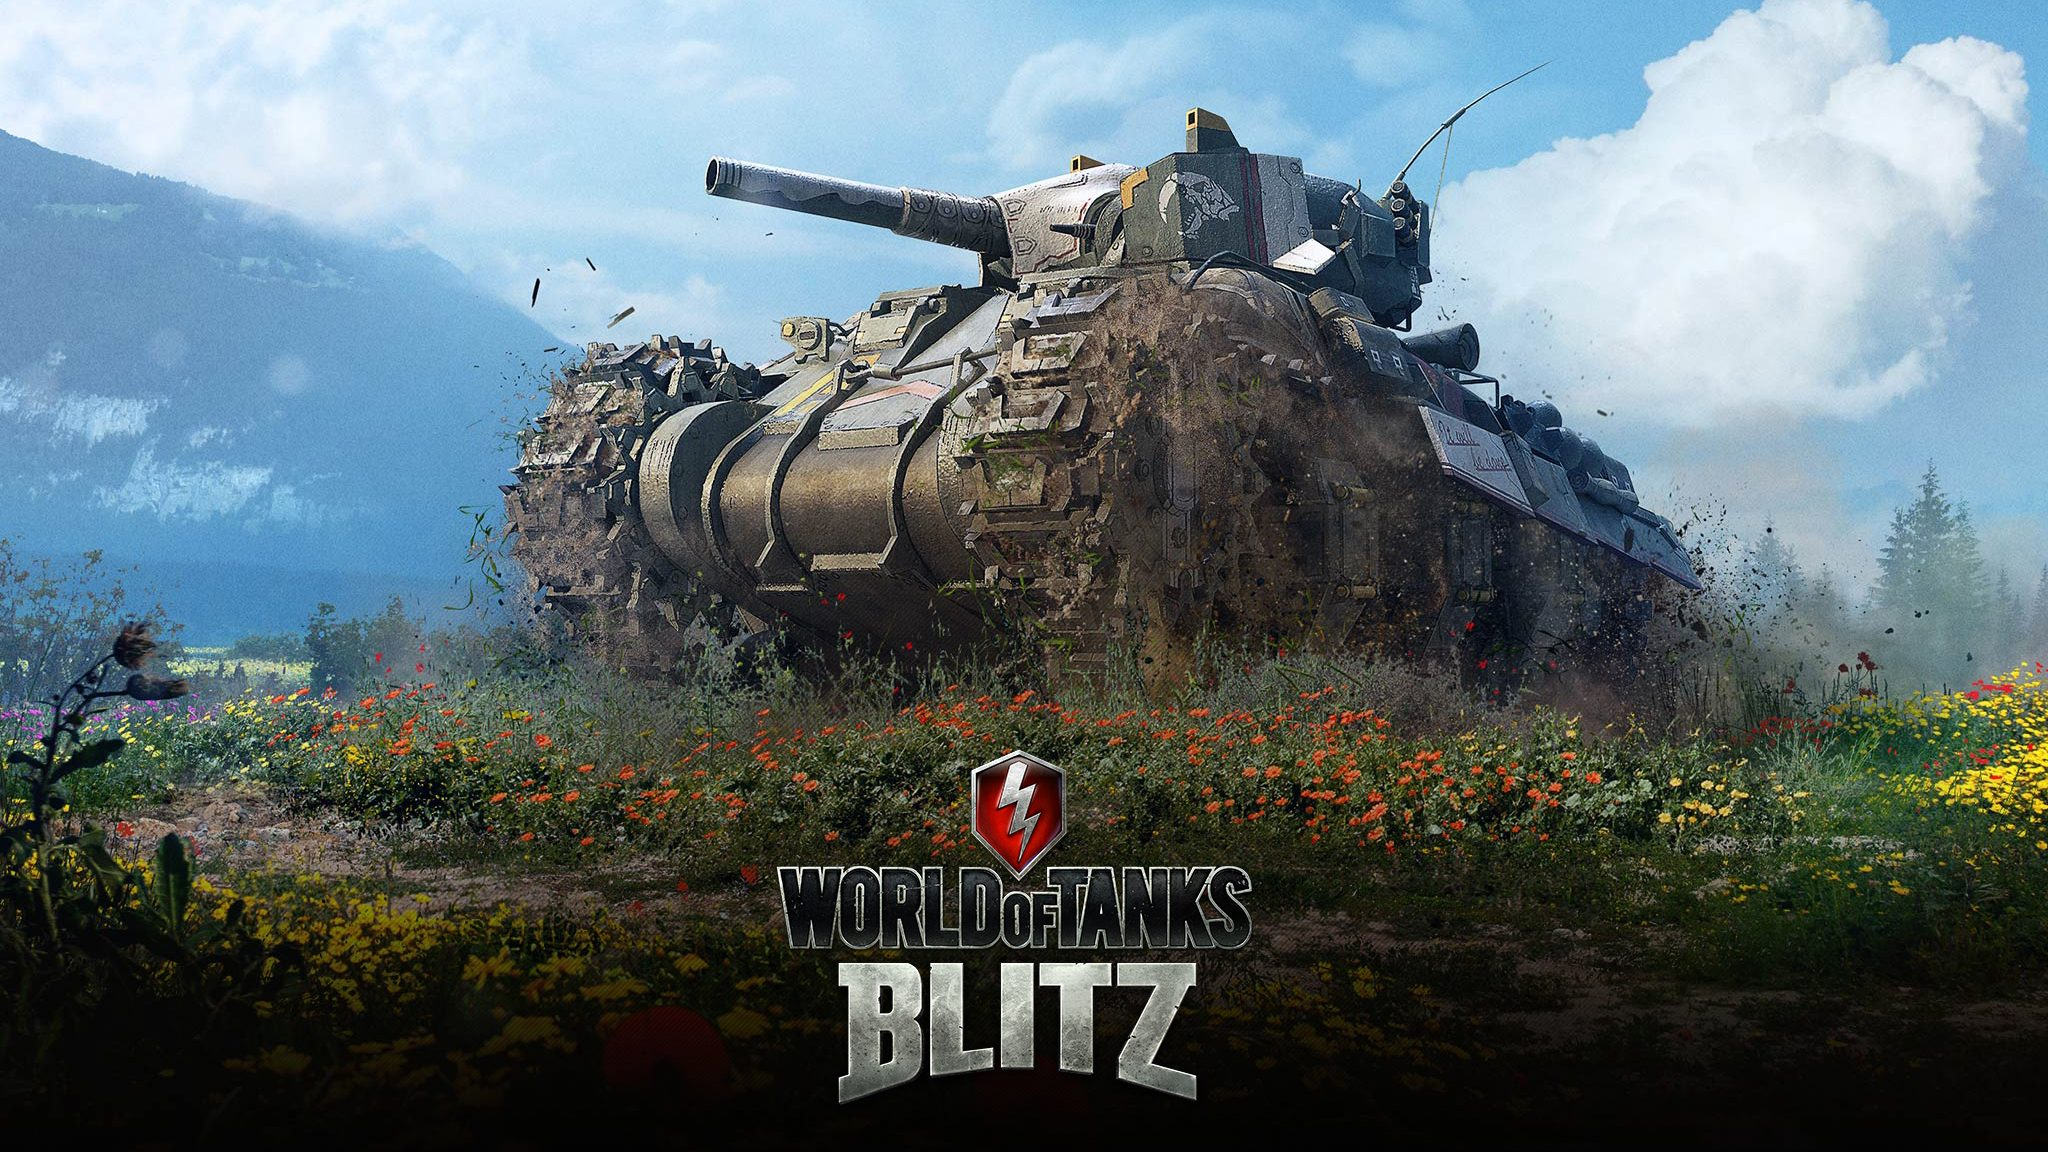 World-of-Tanks-Blitz-vijf-jaar